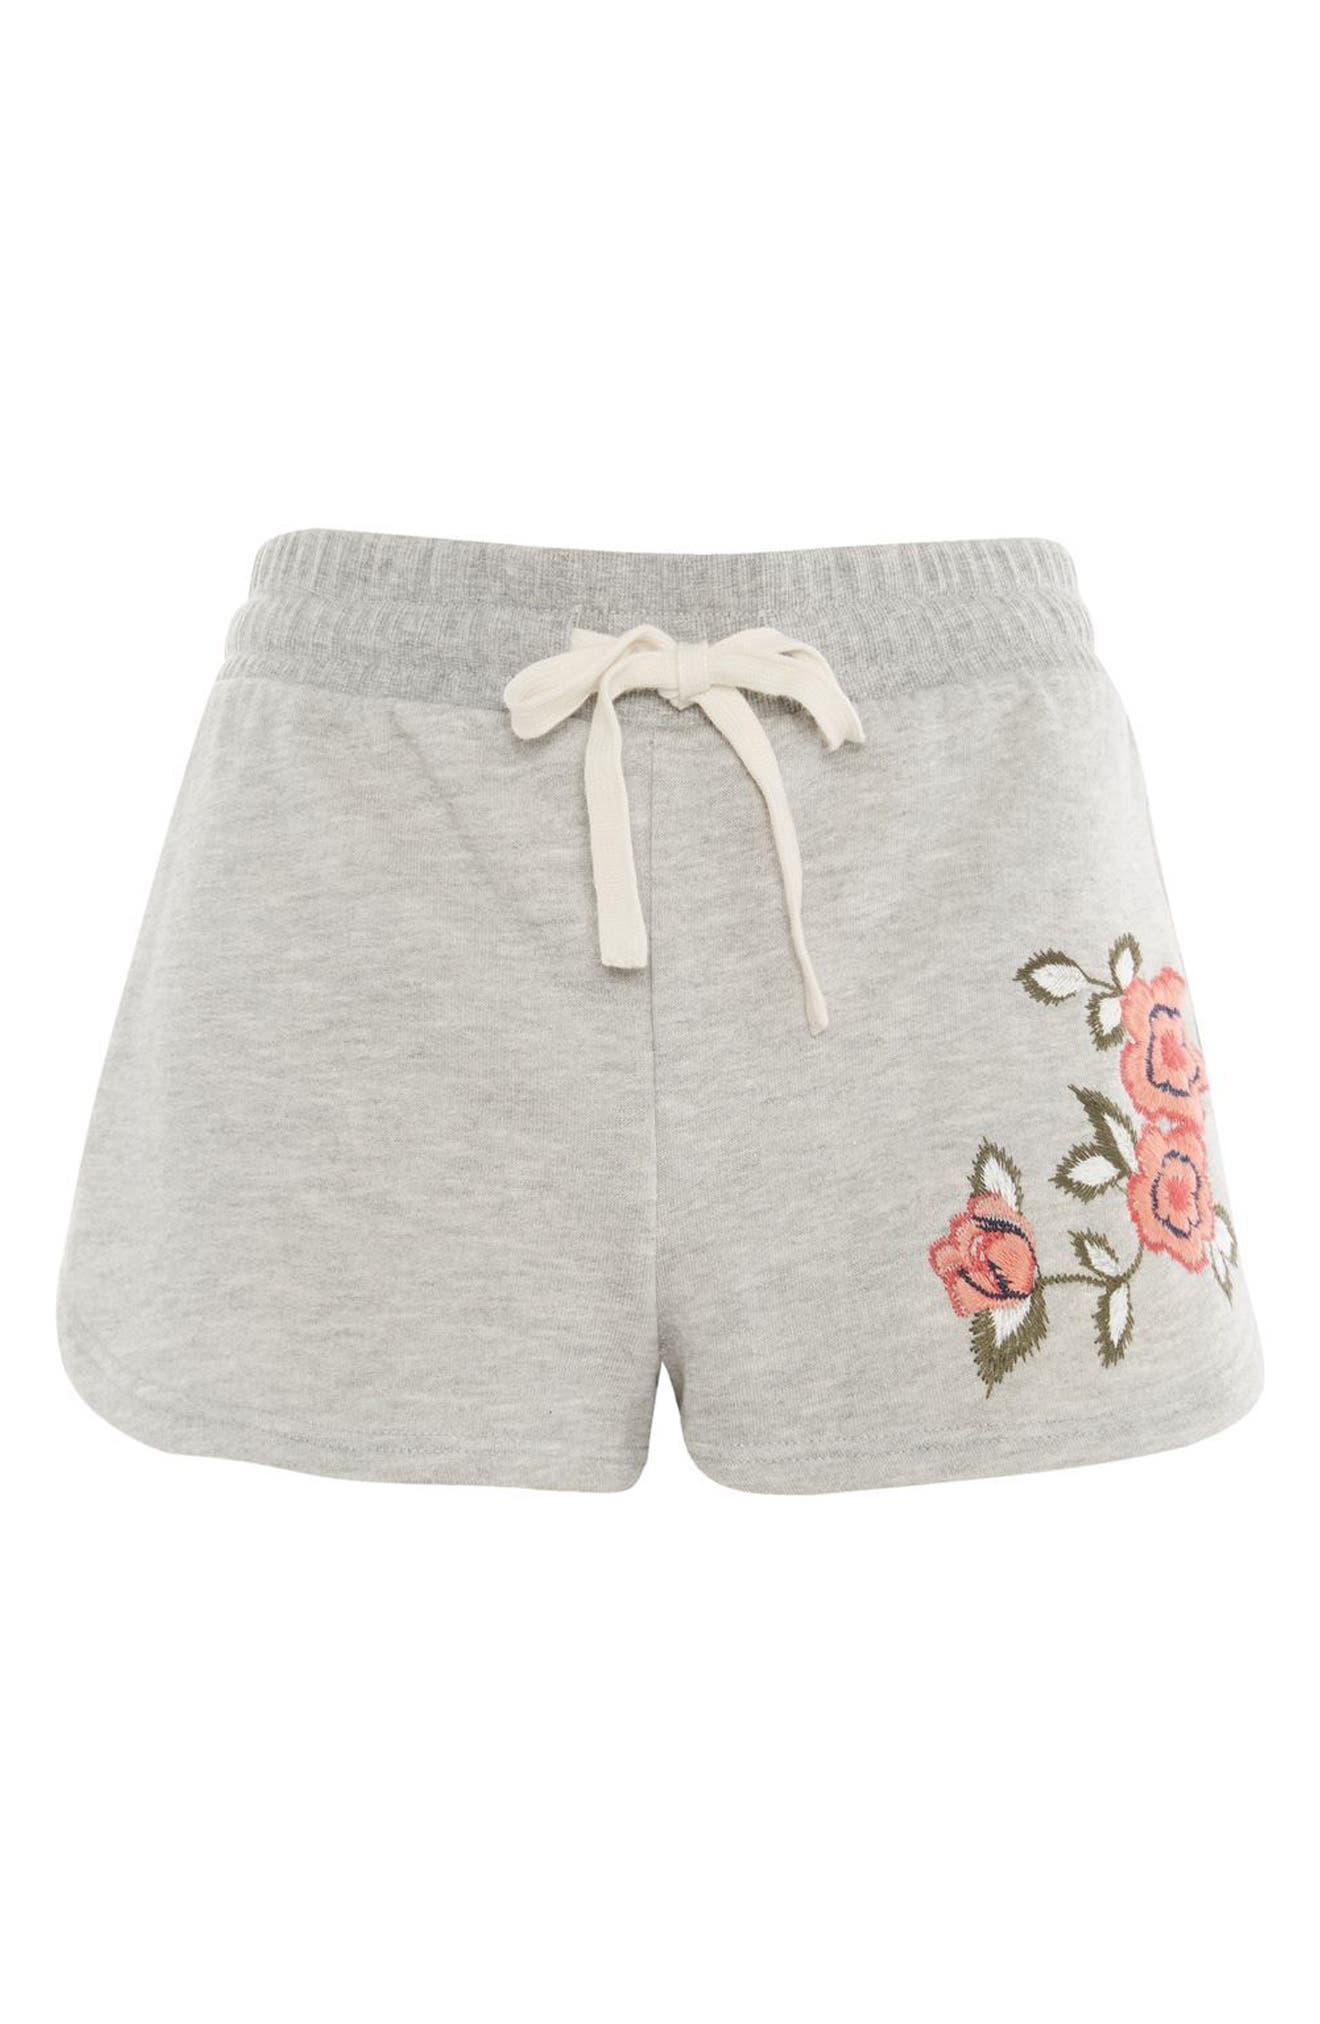 Topshop Floral Embroidered Lounge Shorts